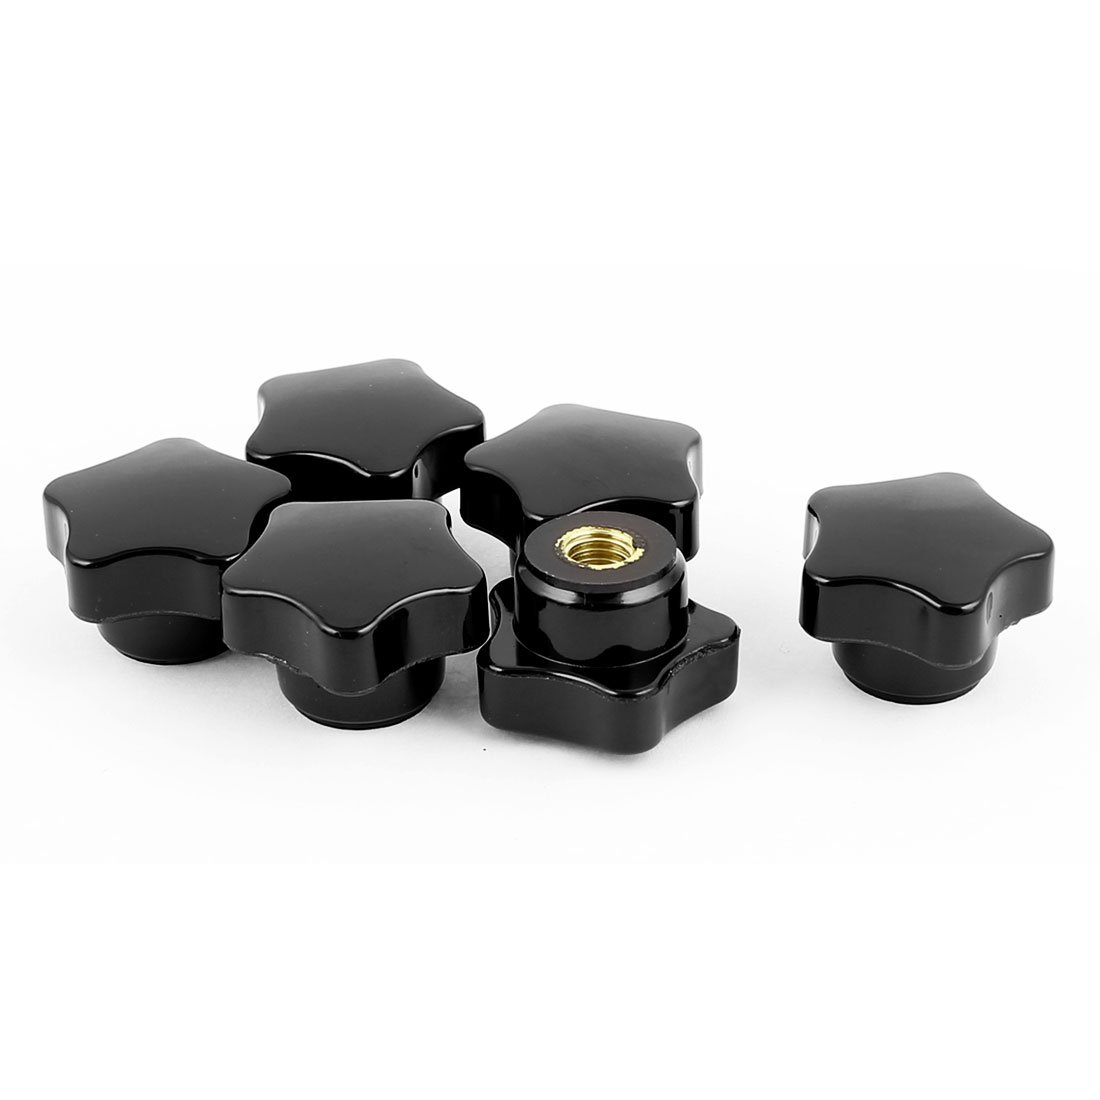 Sourcingmap 6pcs 32mm Dia Star Head M8 Female Thread Nuts Clamping Star Knob Grip Handle Black a16031700ux0156